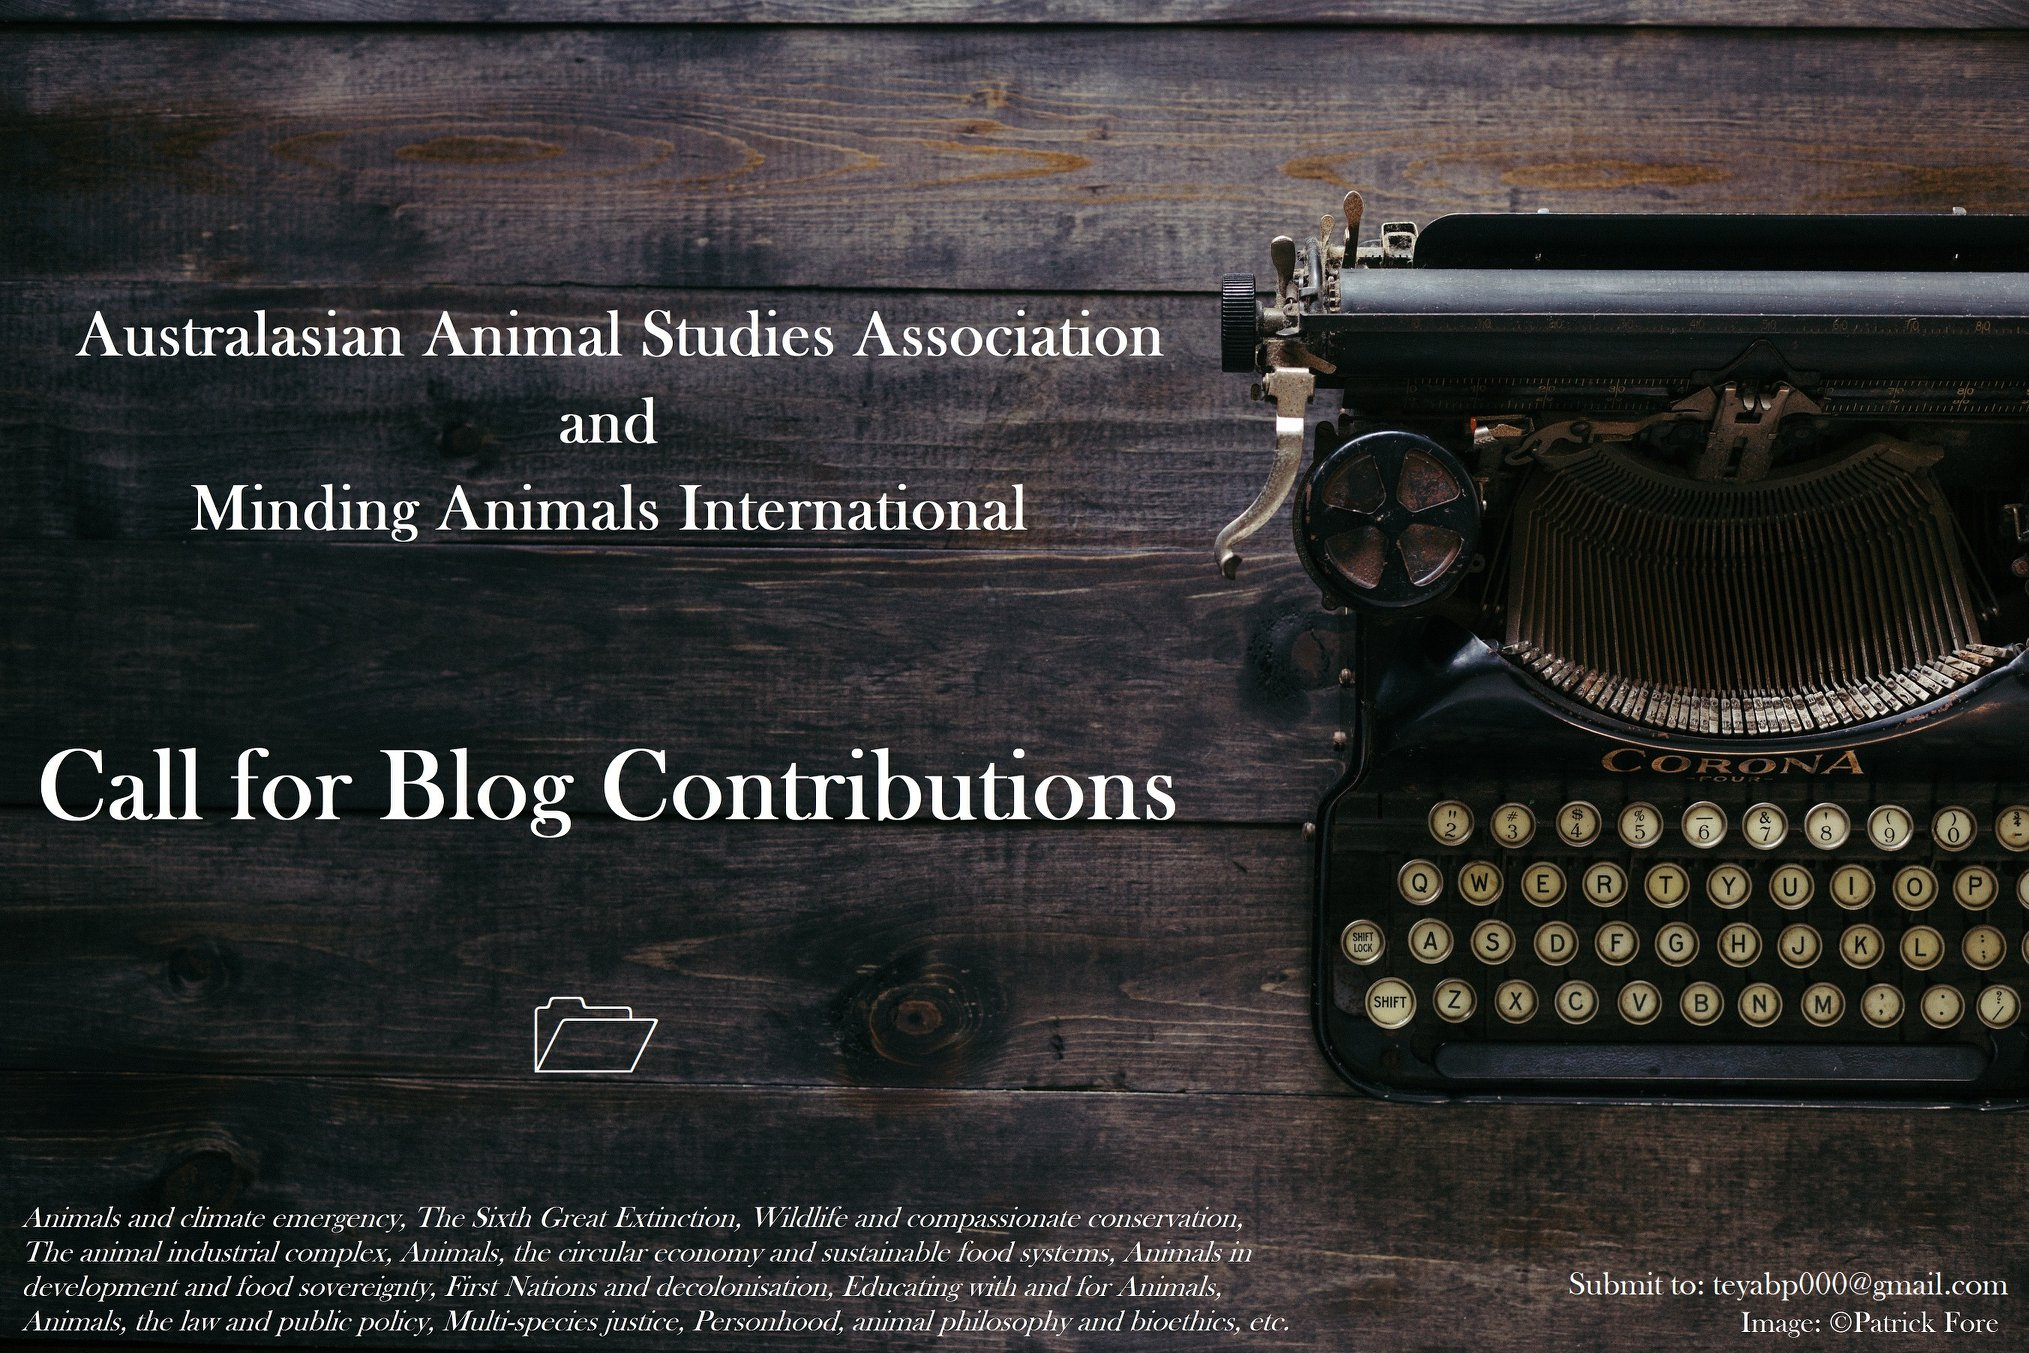 Call for Blog Contributions: AASA/Minding Animals